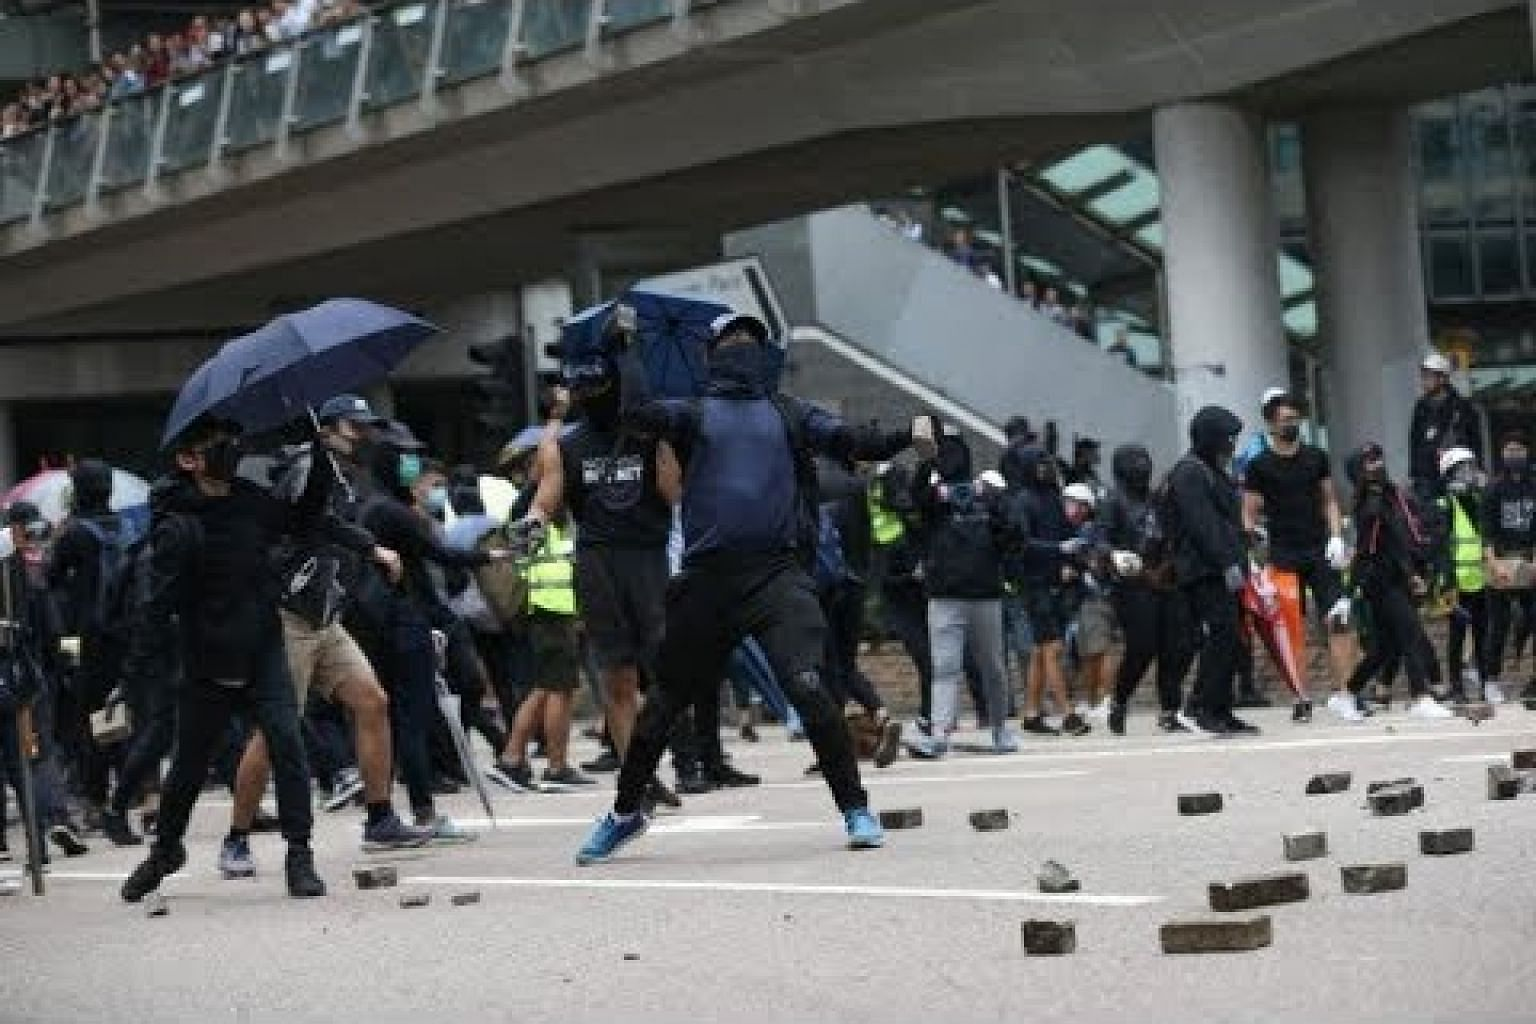 Hong Kong on edge as anti-government protests grip city